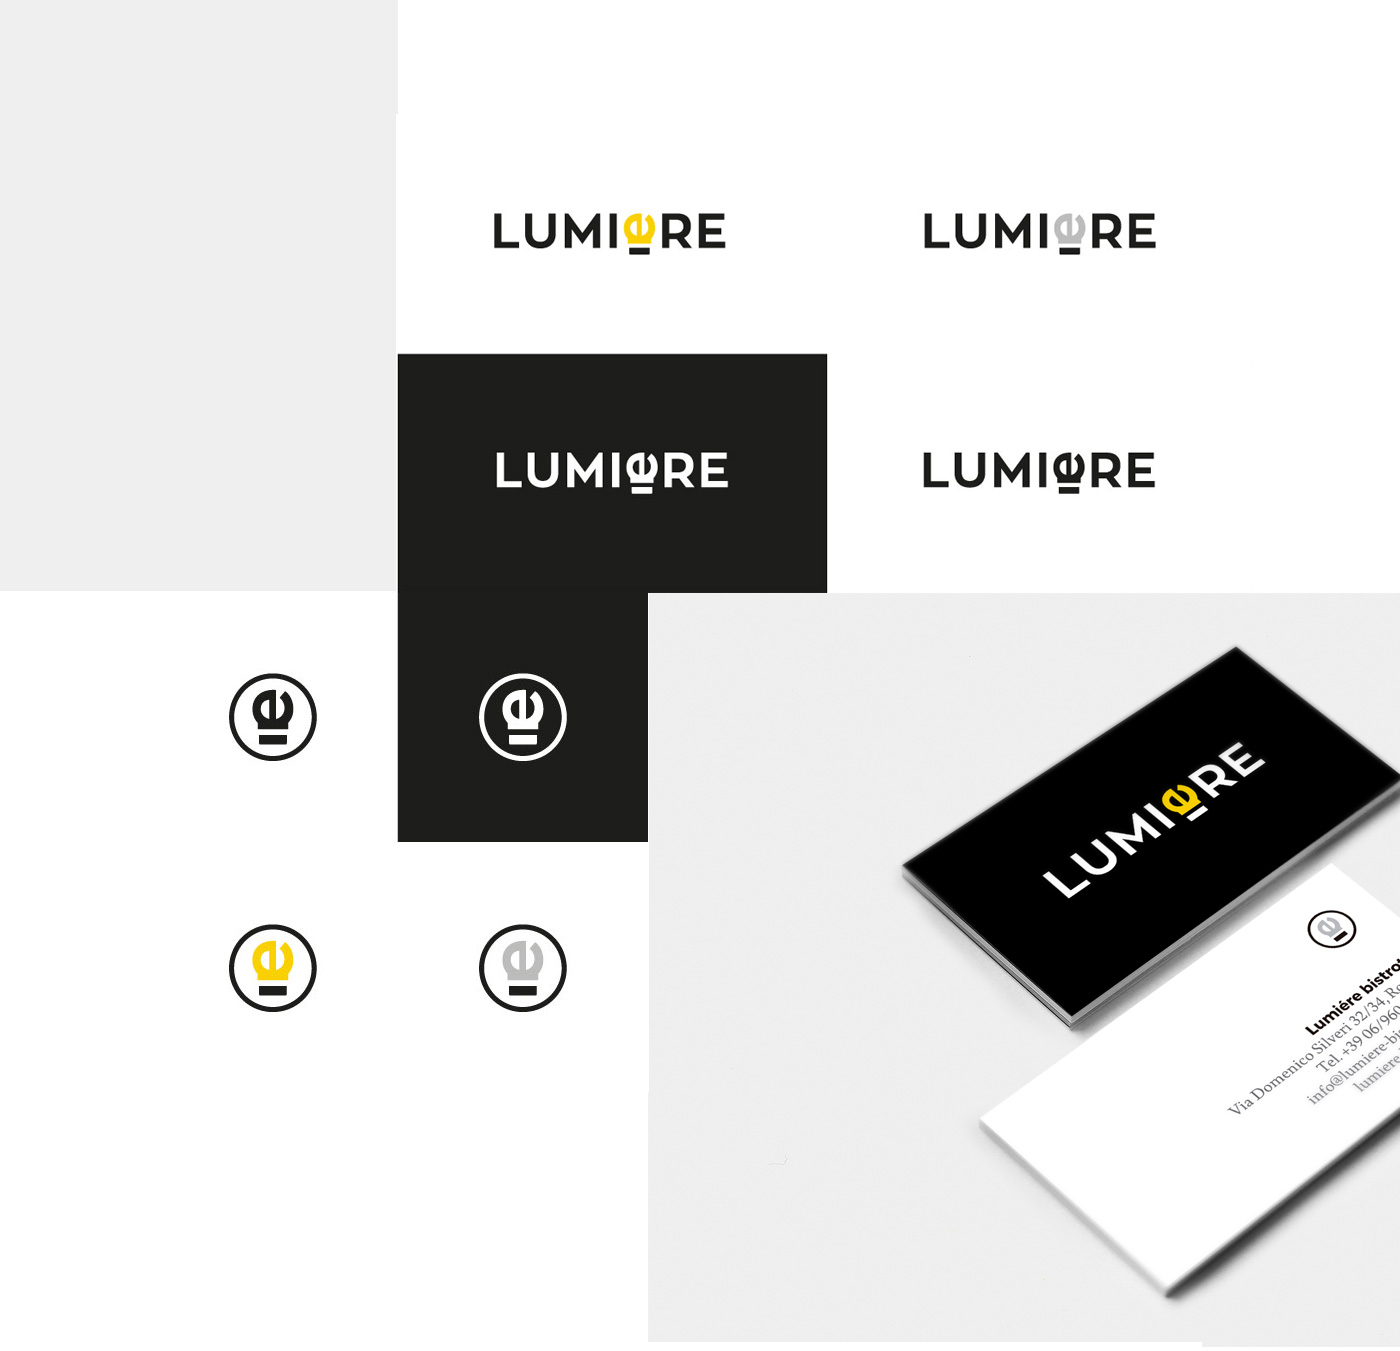 lumiere-8-new